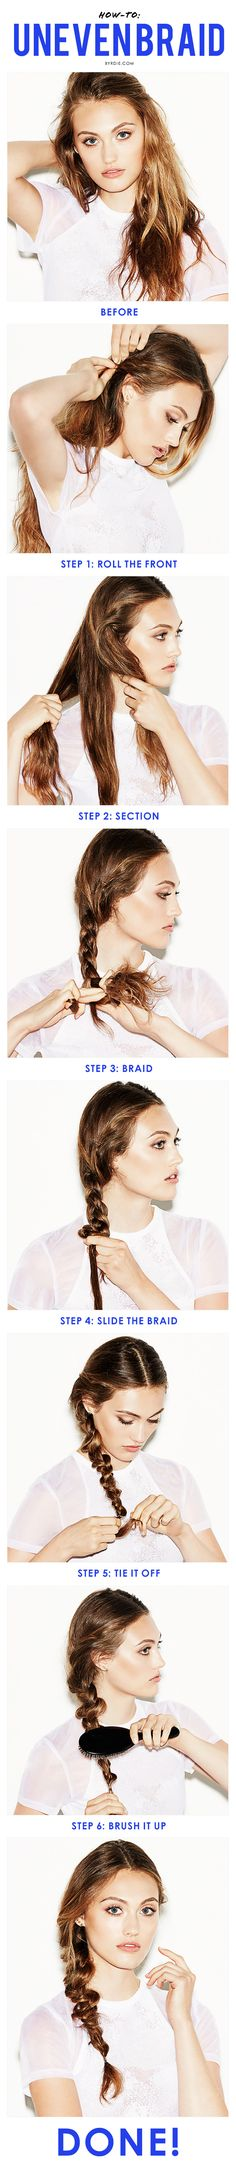 How to create a textured uneven braid {and look totally chic}